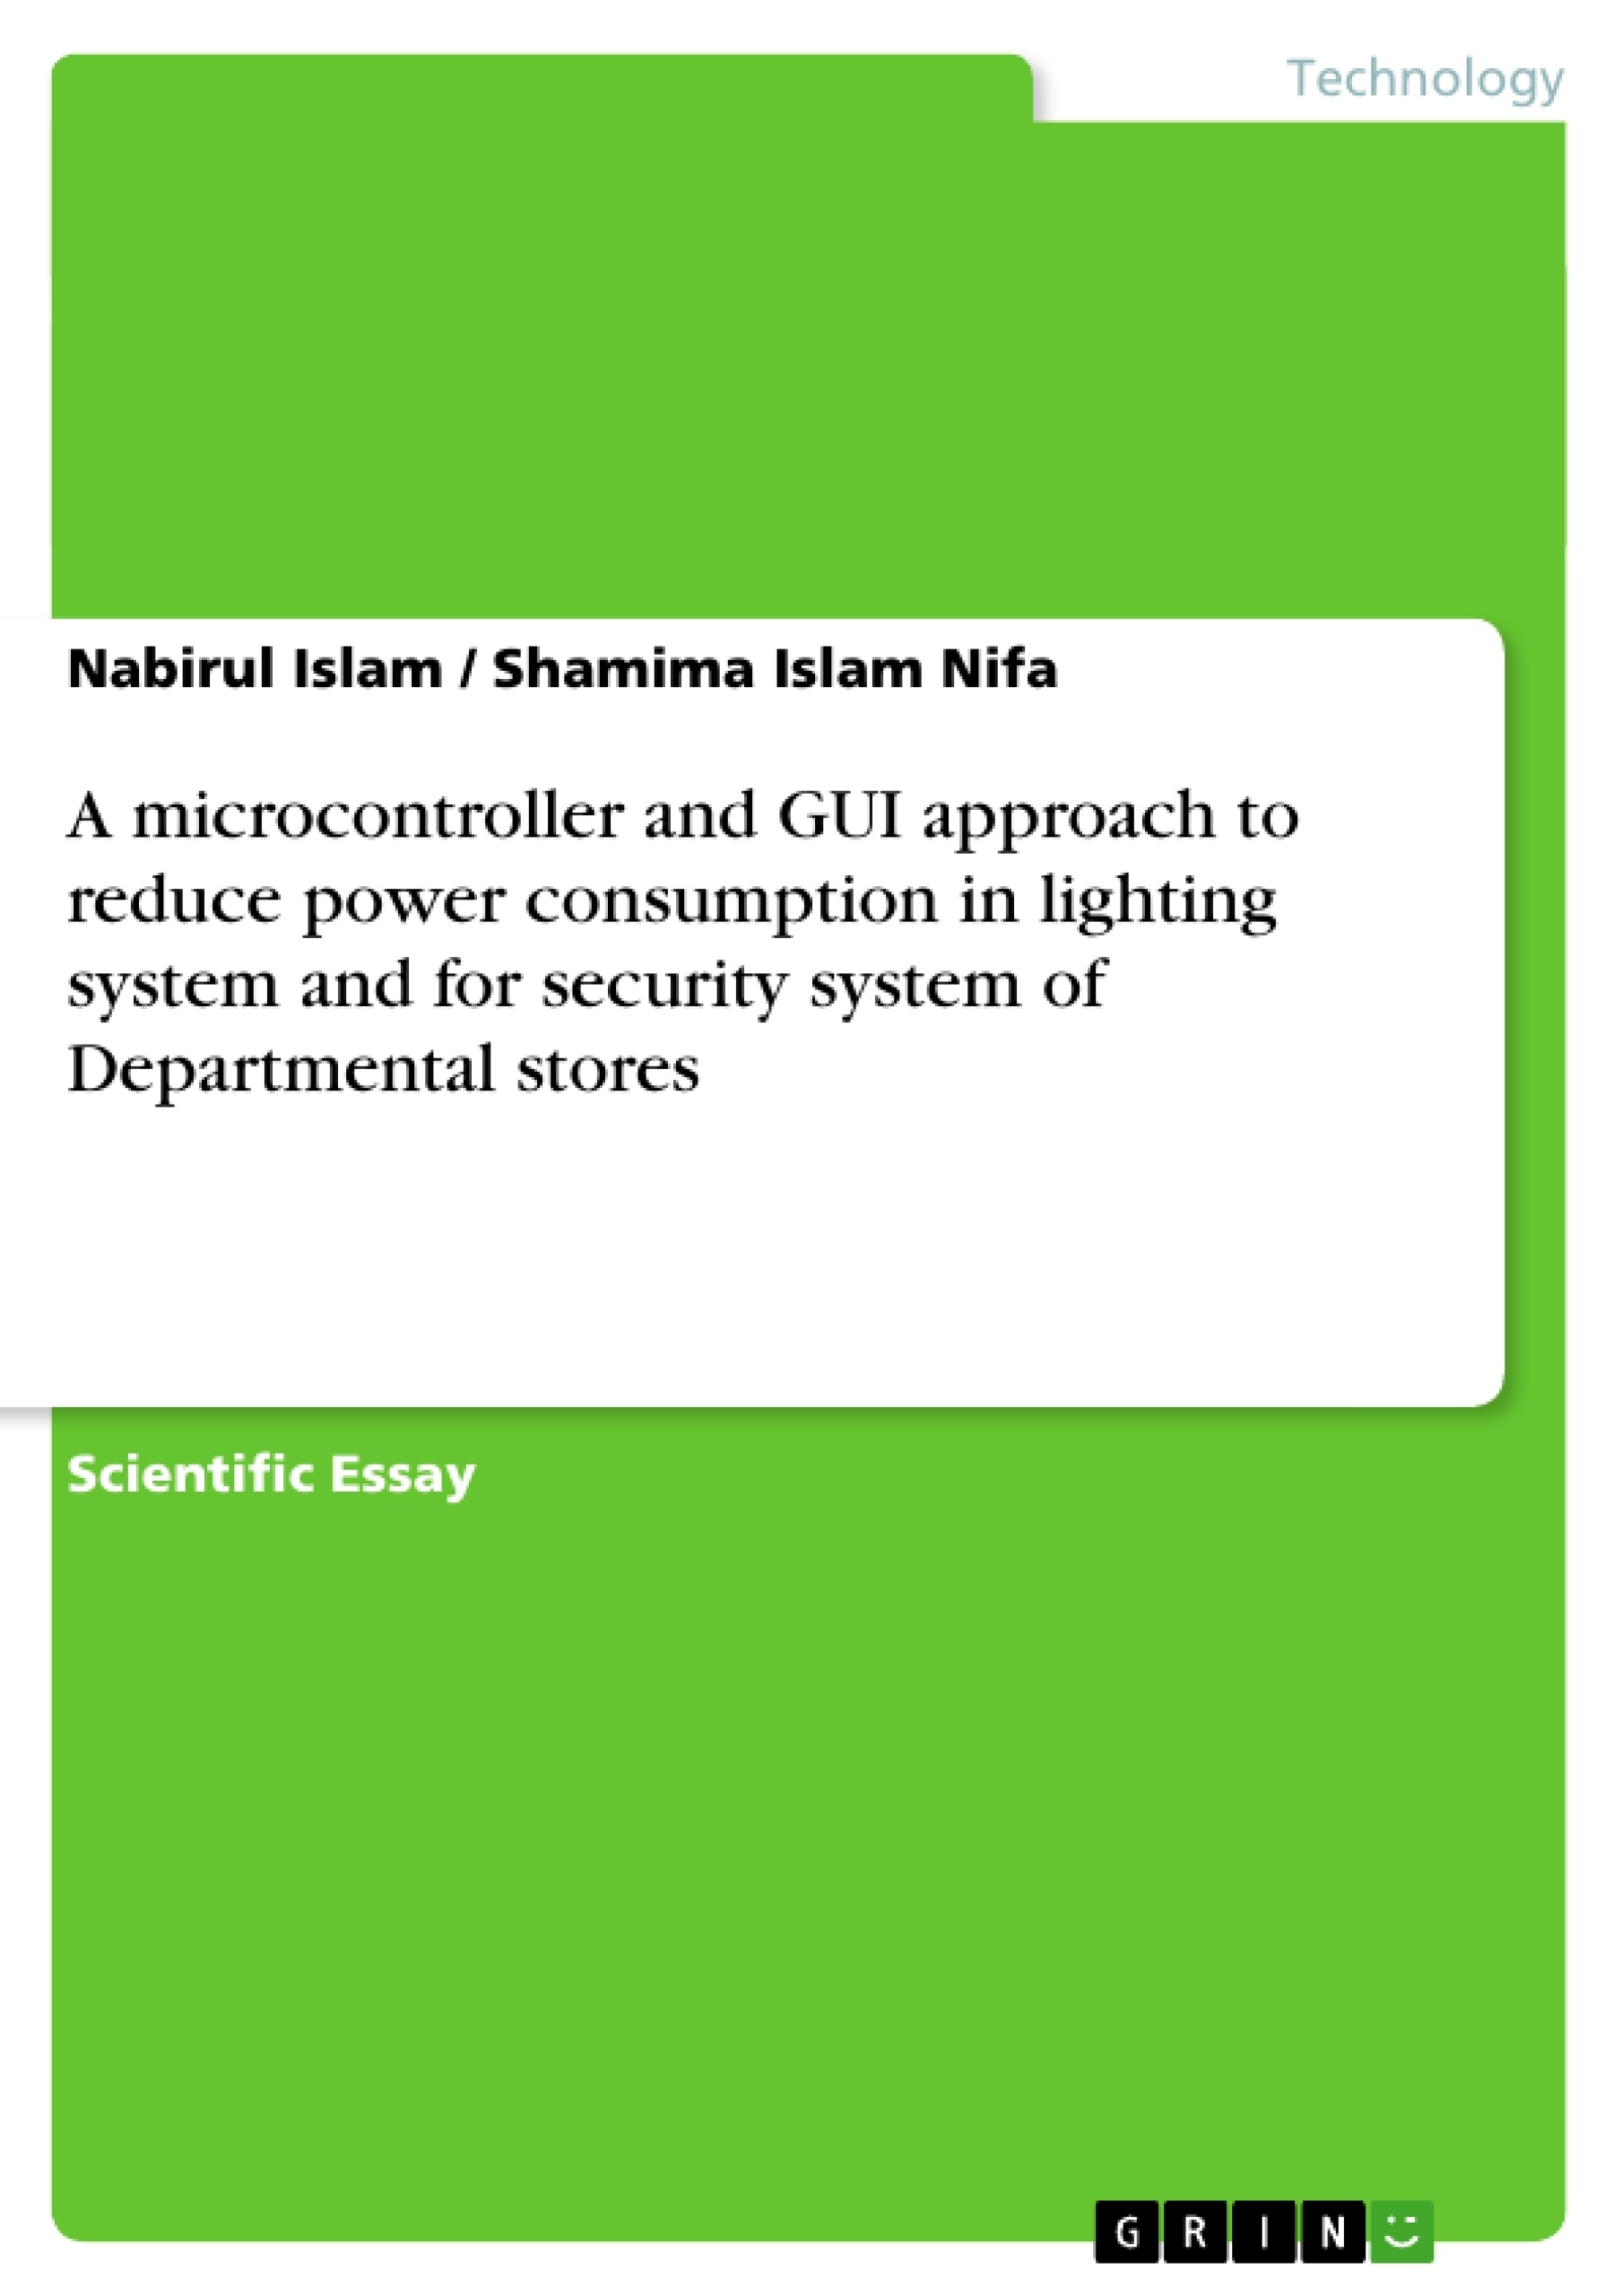 Title: A microcontroller and GUI approach to reduce power consumption in lighting system and for security system of Departmental stores